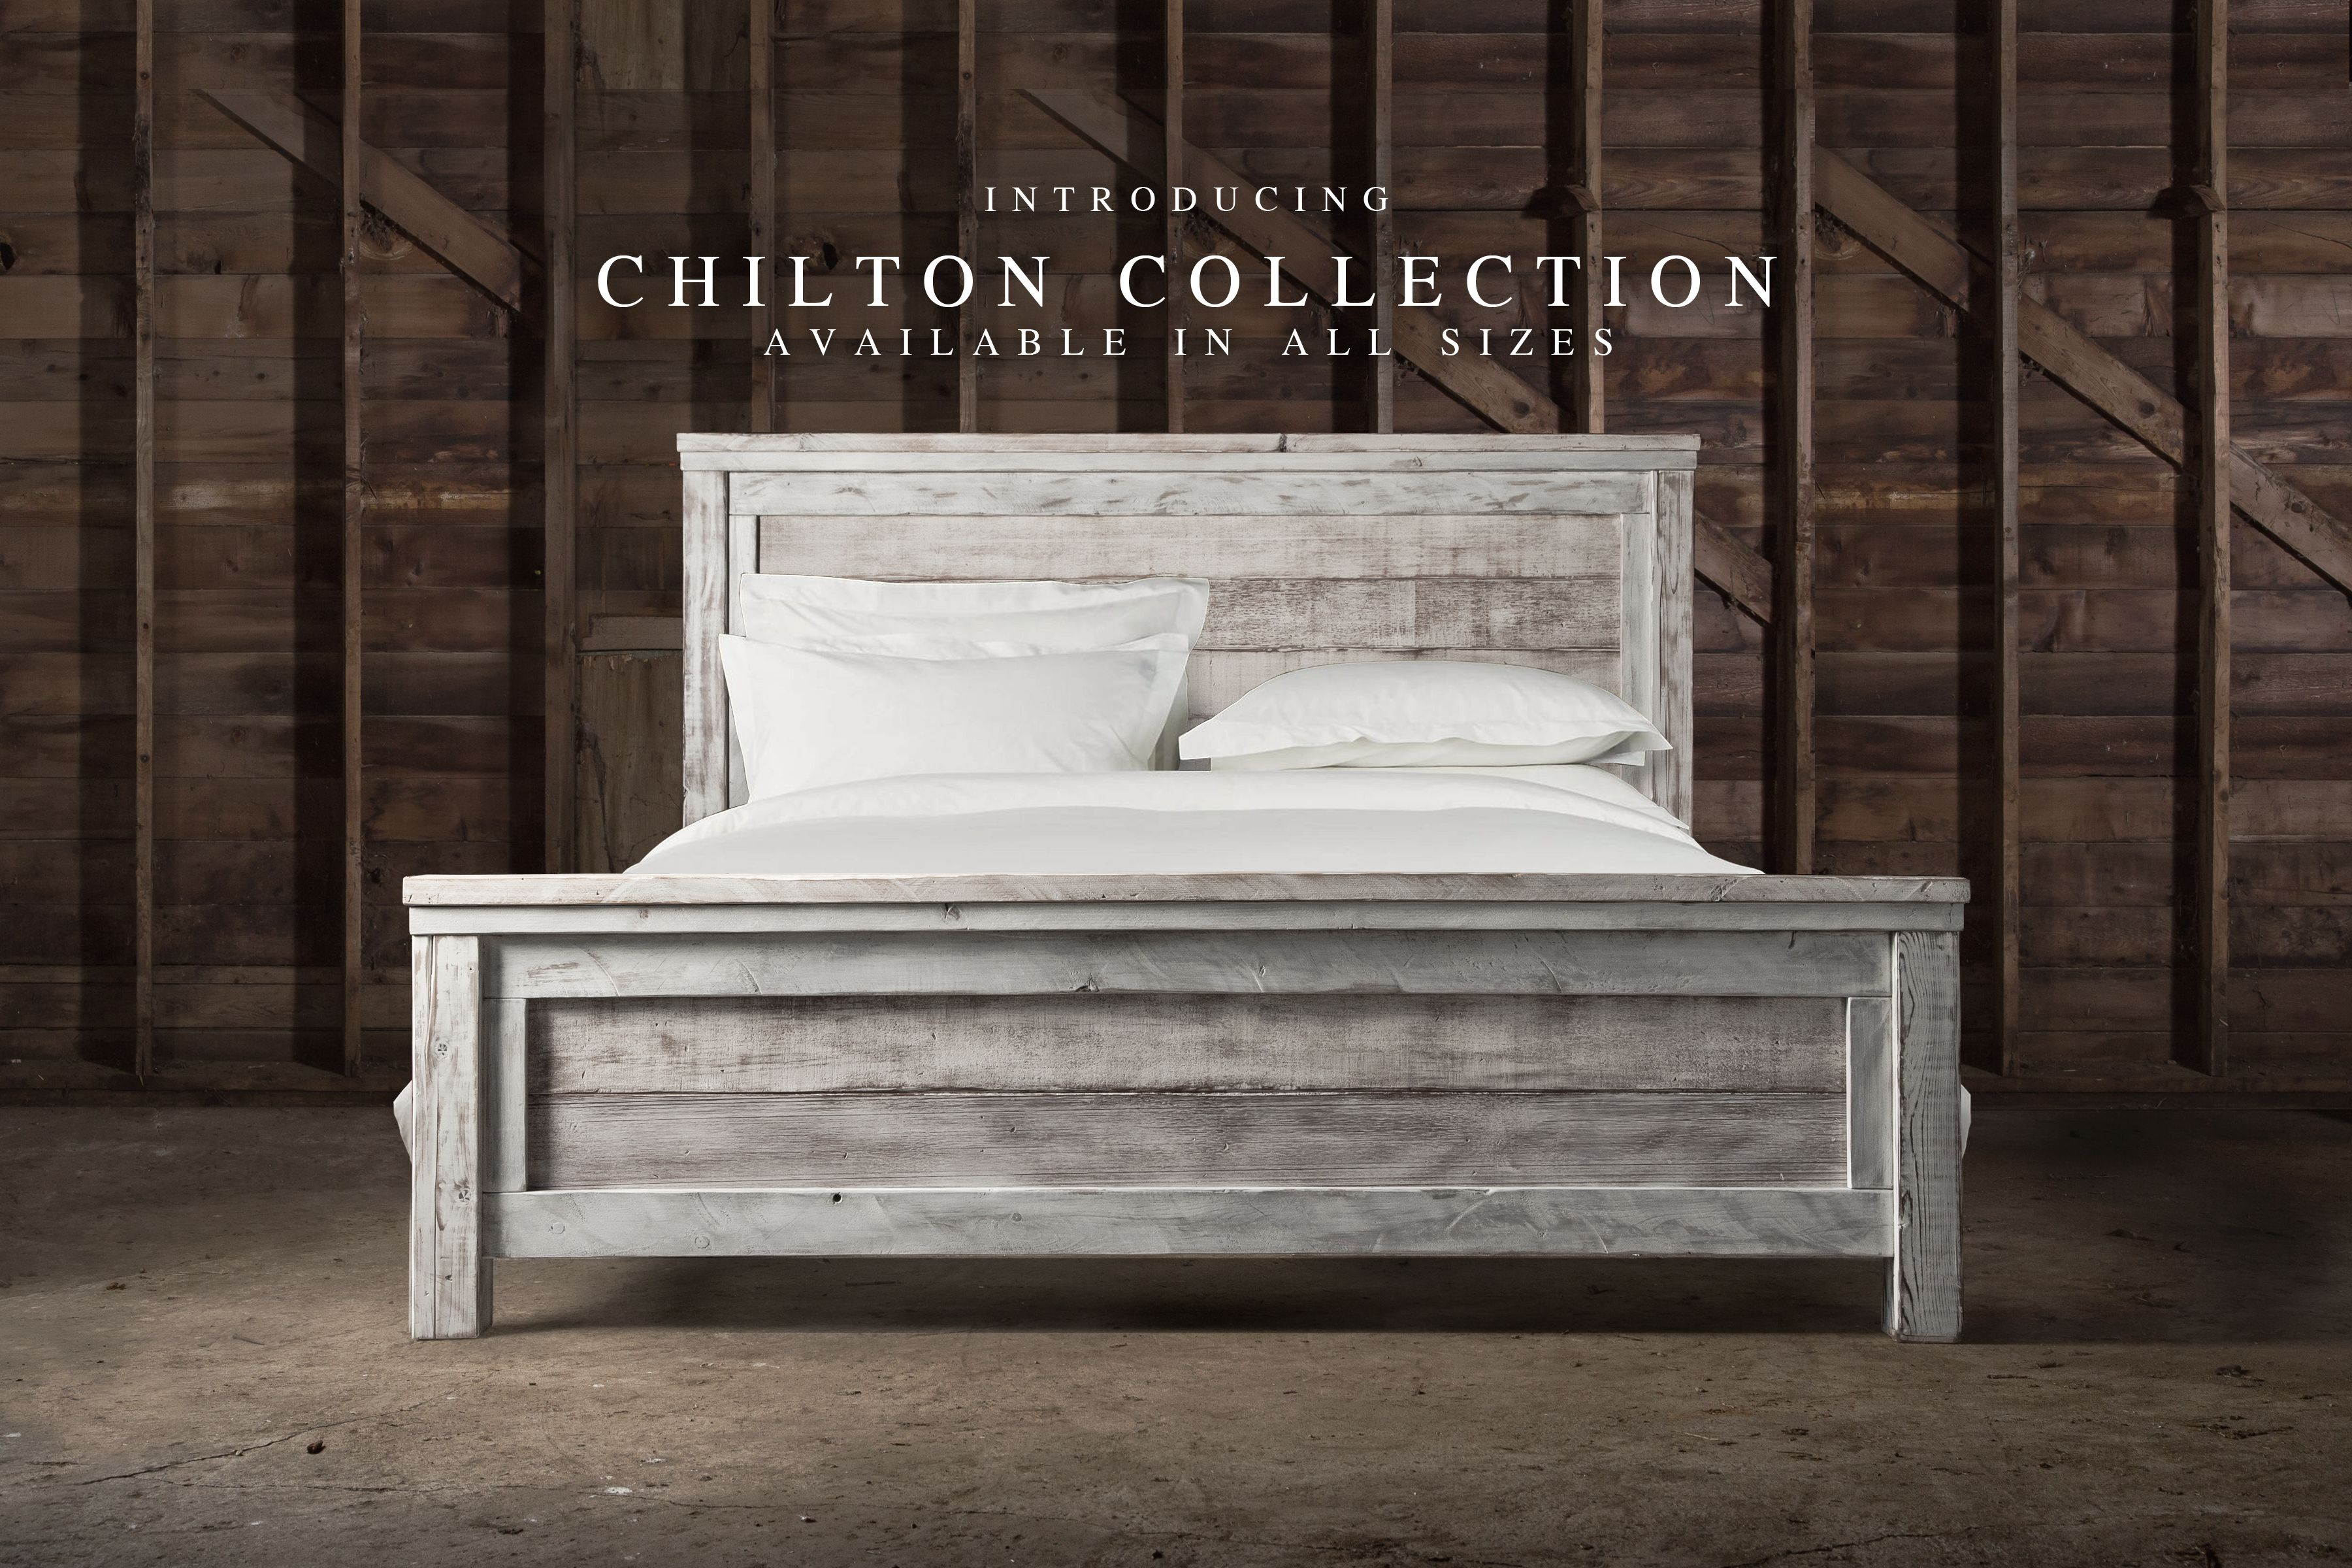 Our Reclaimed Chilton Bed This Rustic Farm Bed Is Handcrafted From Reclaimed Weathered Barn Wood The Plank Desi Farmhouse Bed Frame White Bed Frame Furniture